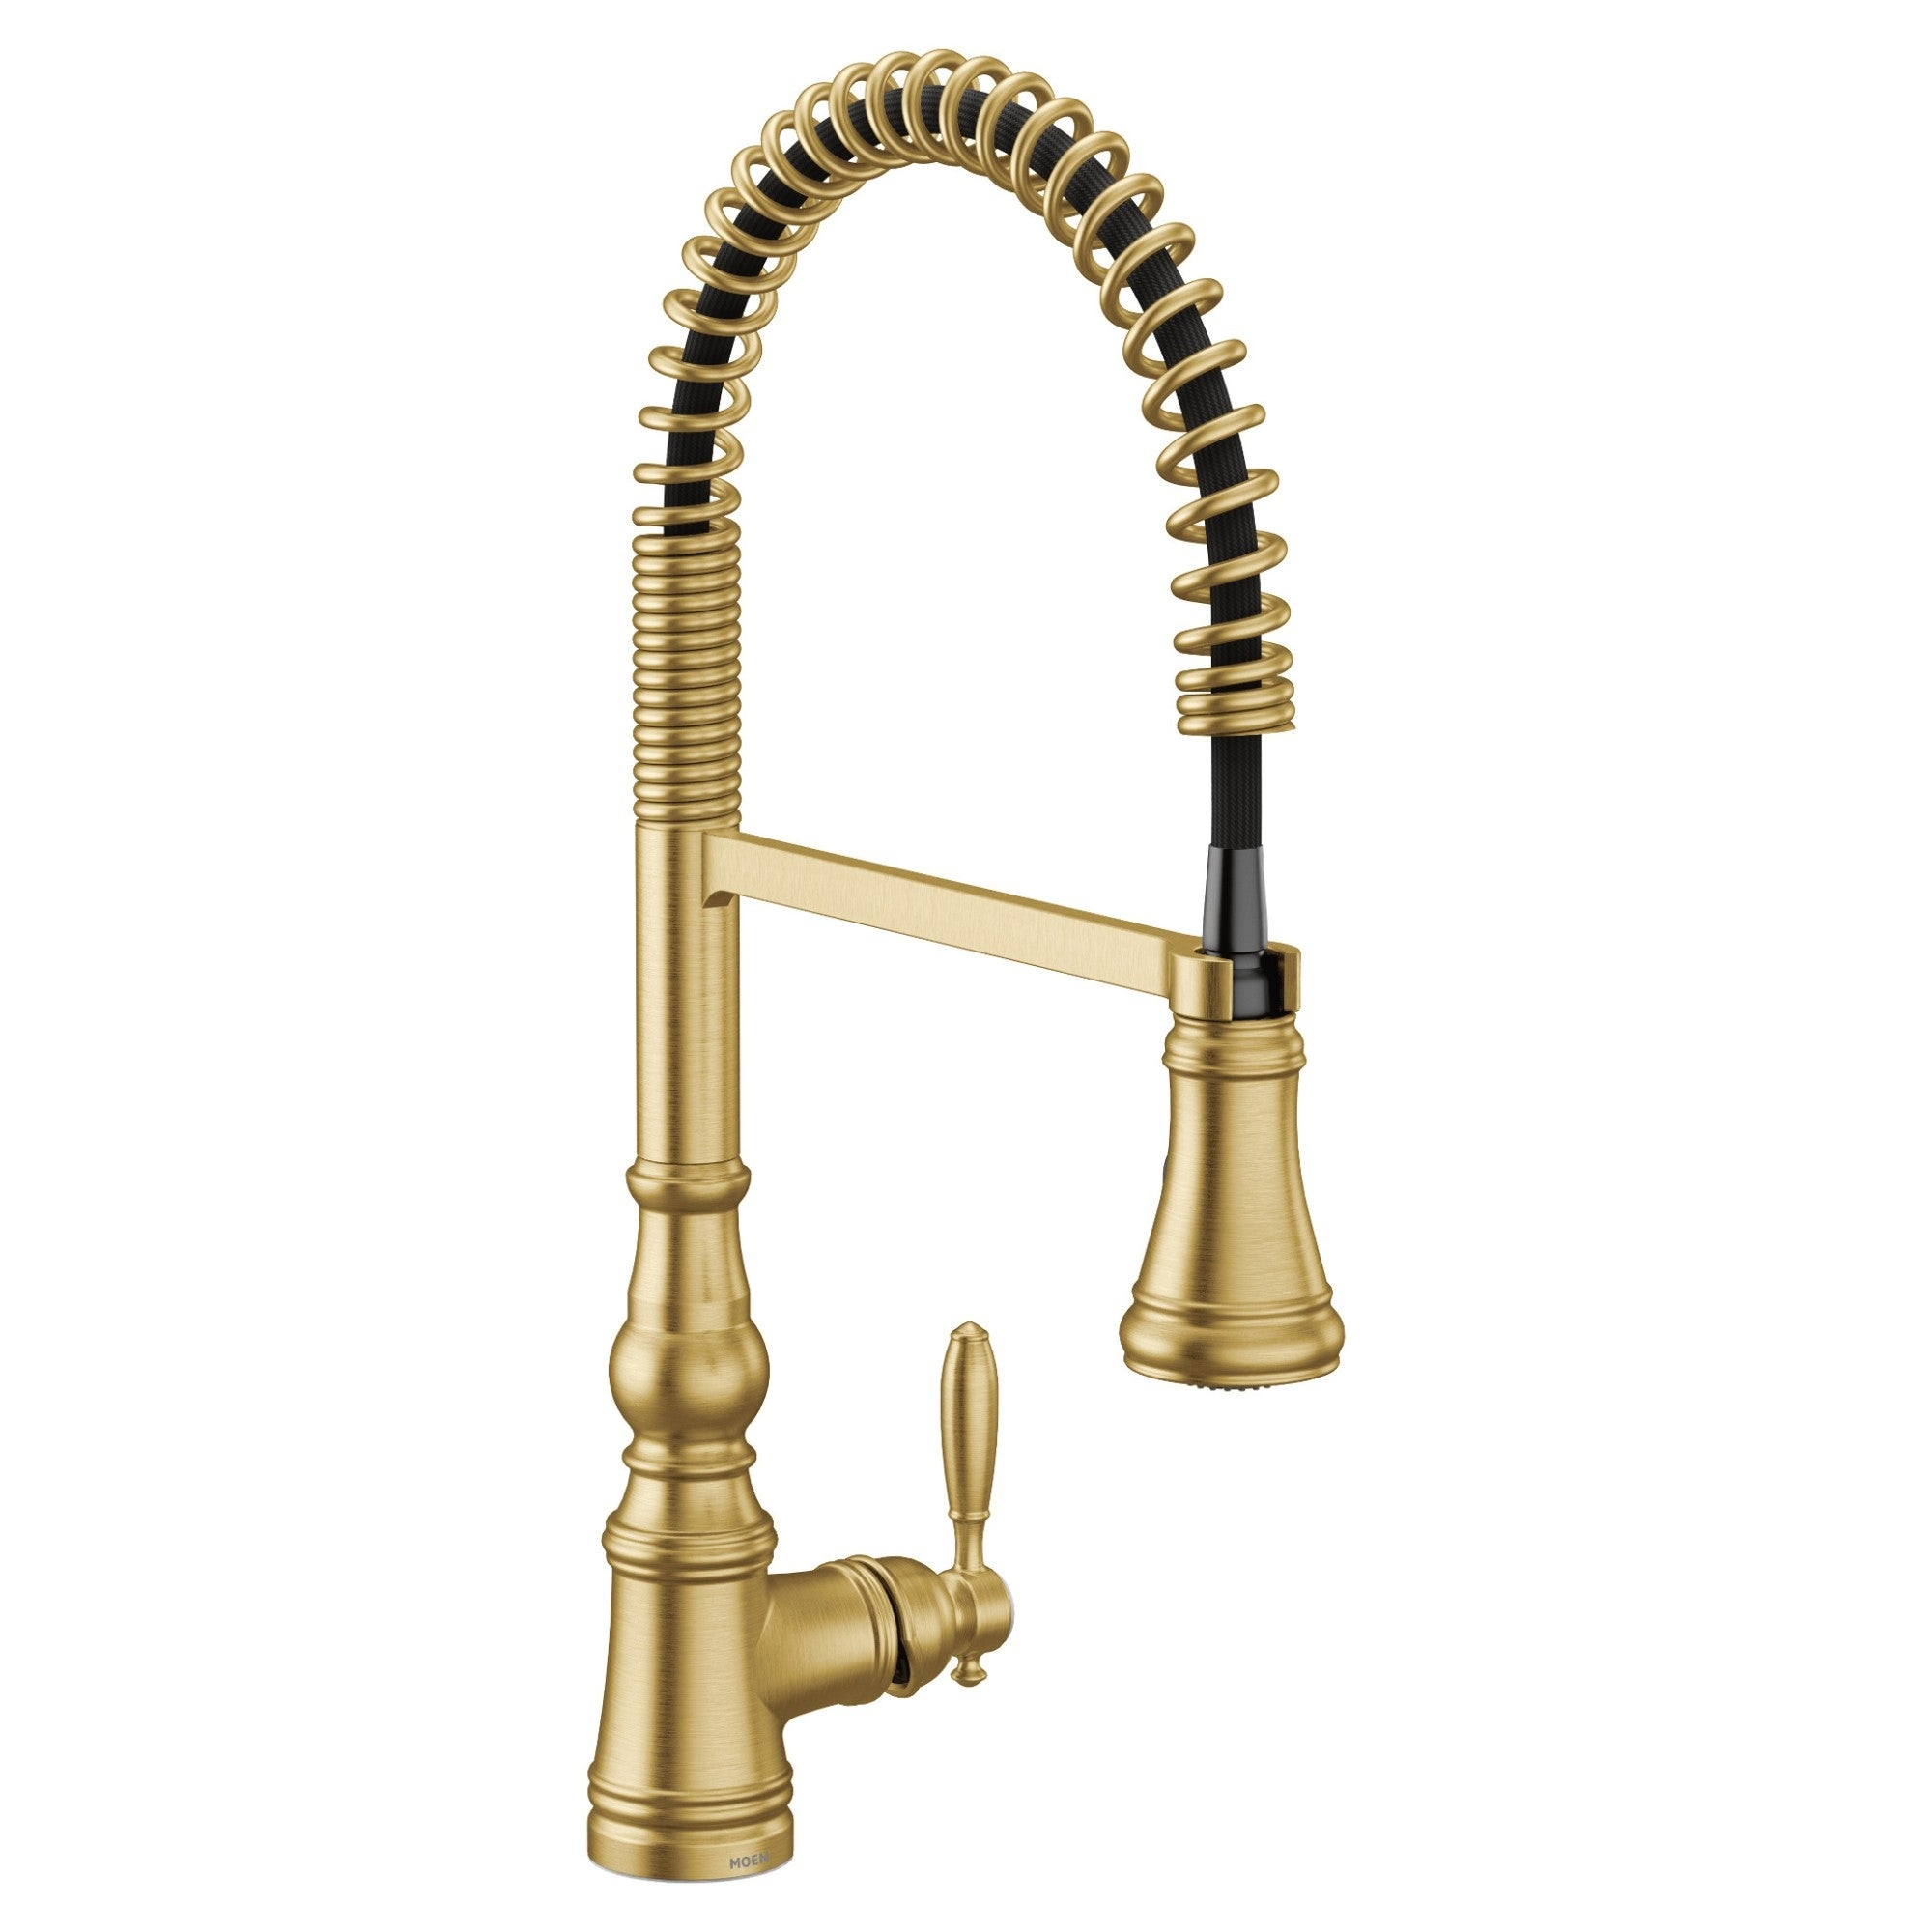 Moen One Handle Pre Rinse Spring Pulldown Kitchen Faucet Brushed Gold S73104bg Overstock 31312628